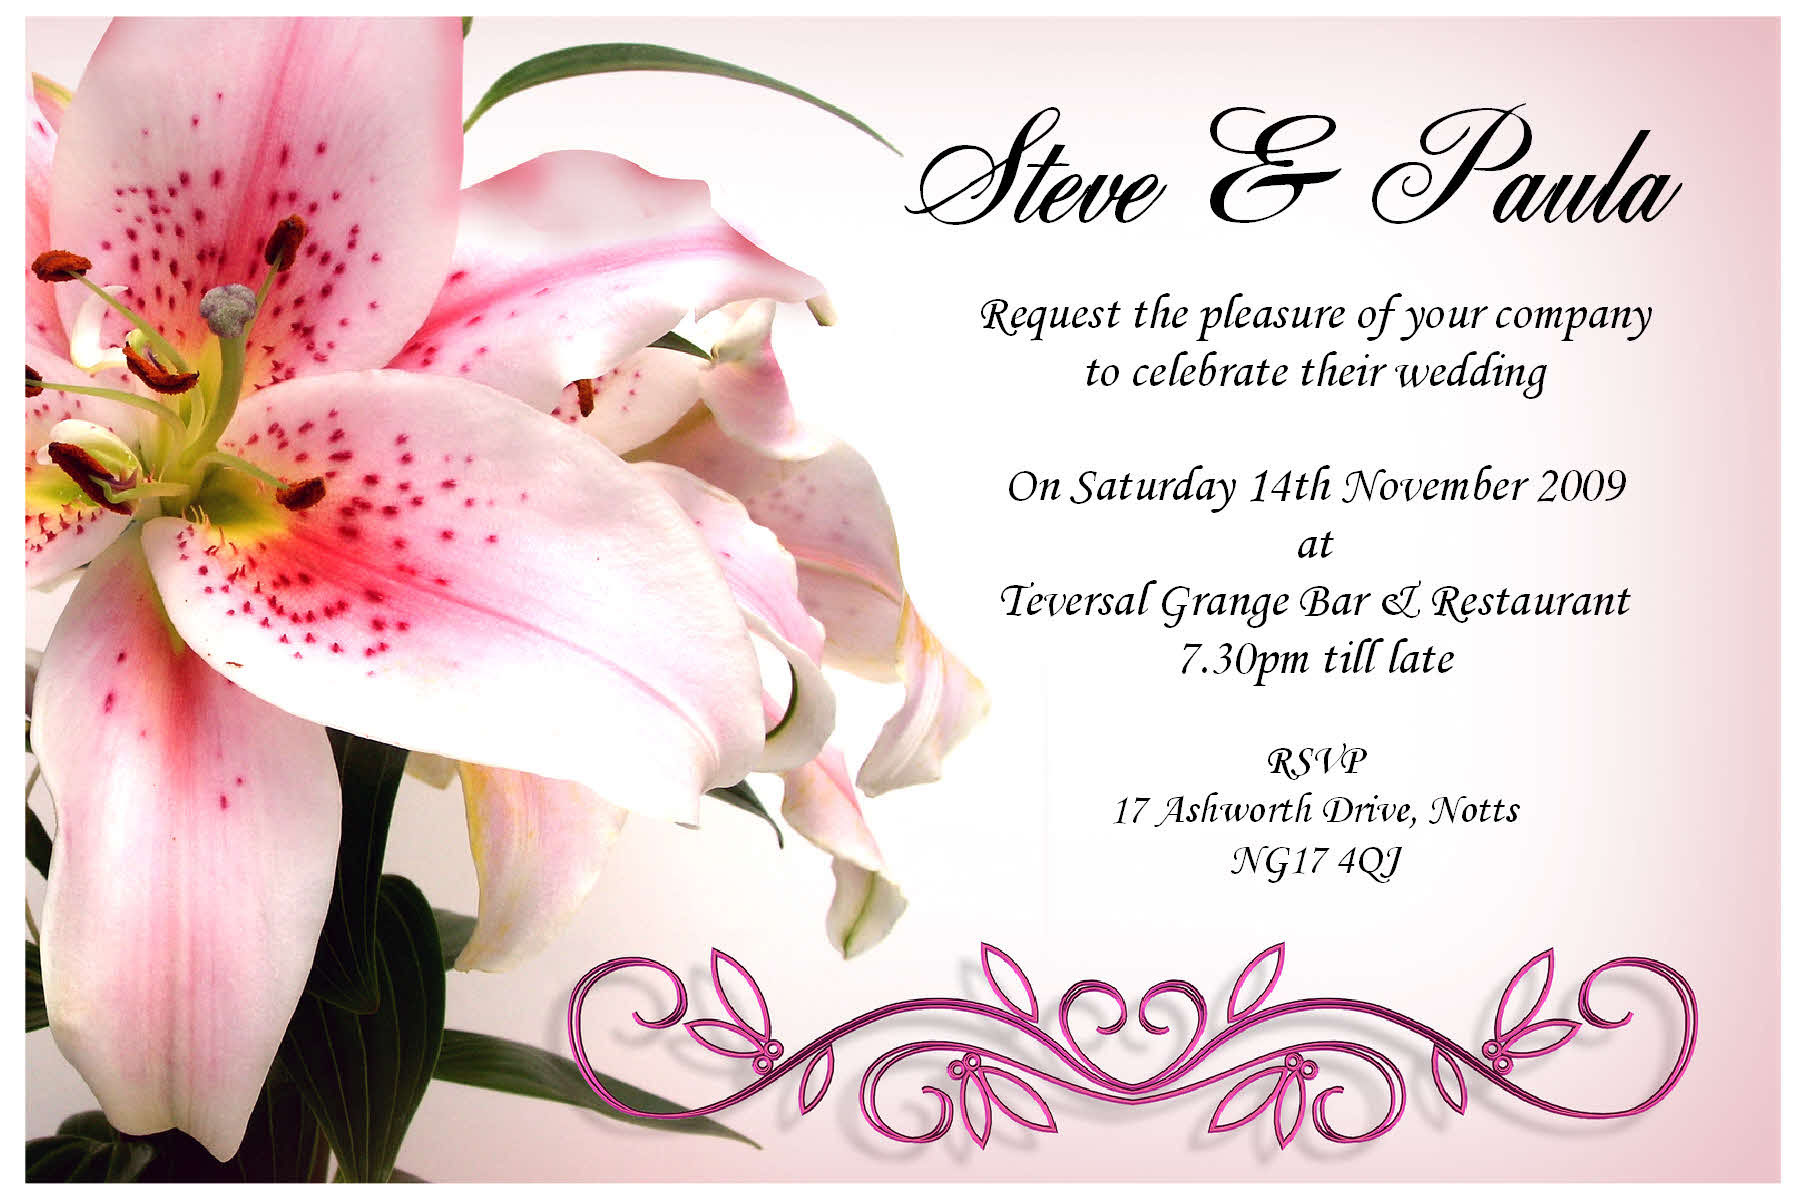 19 Wedding Invitation Cards Templates Designs Images